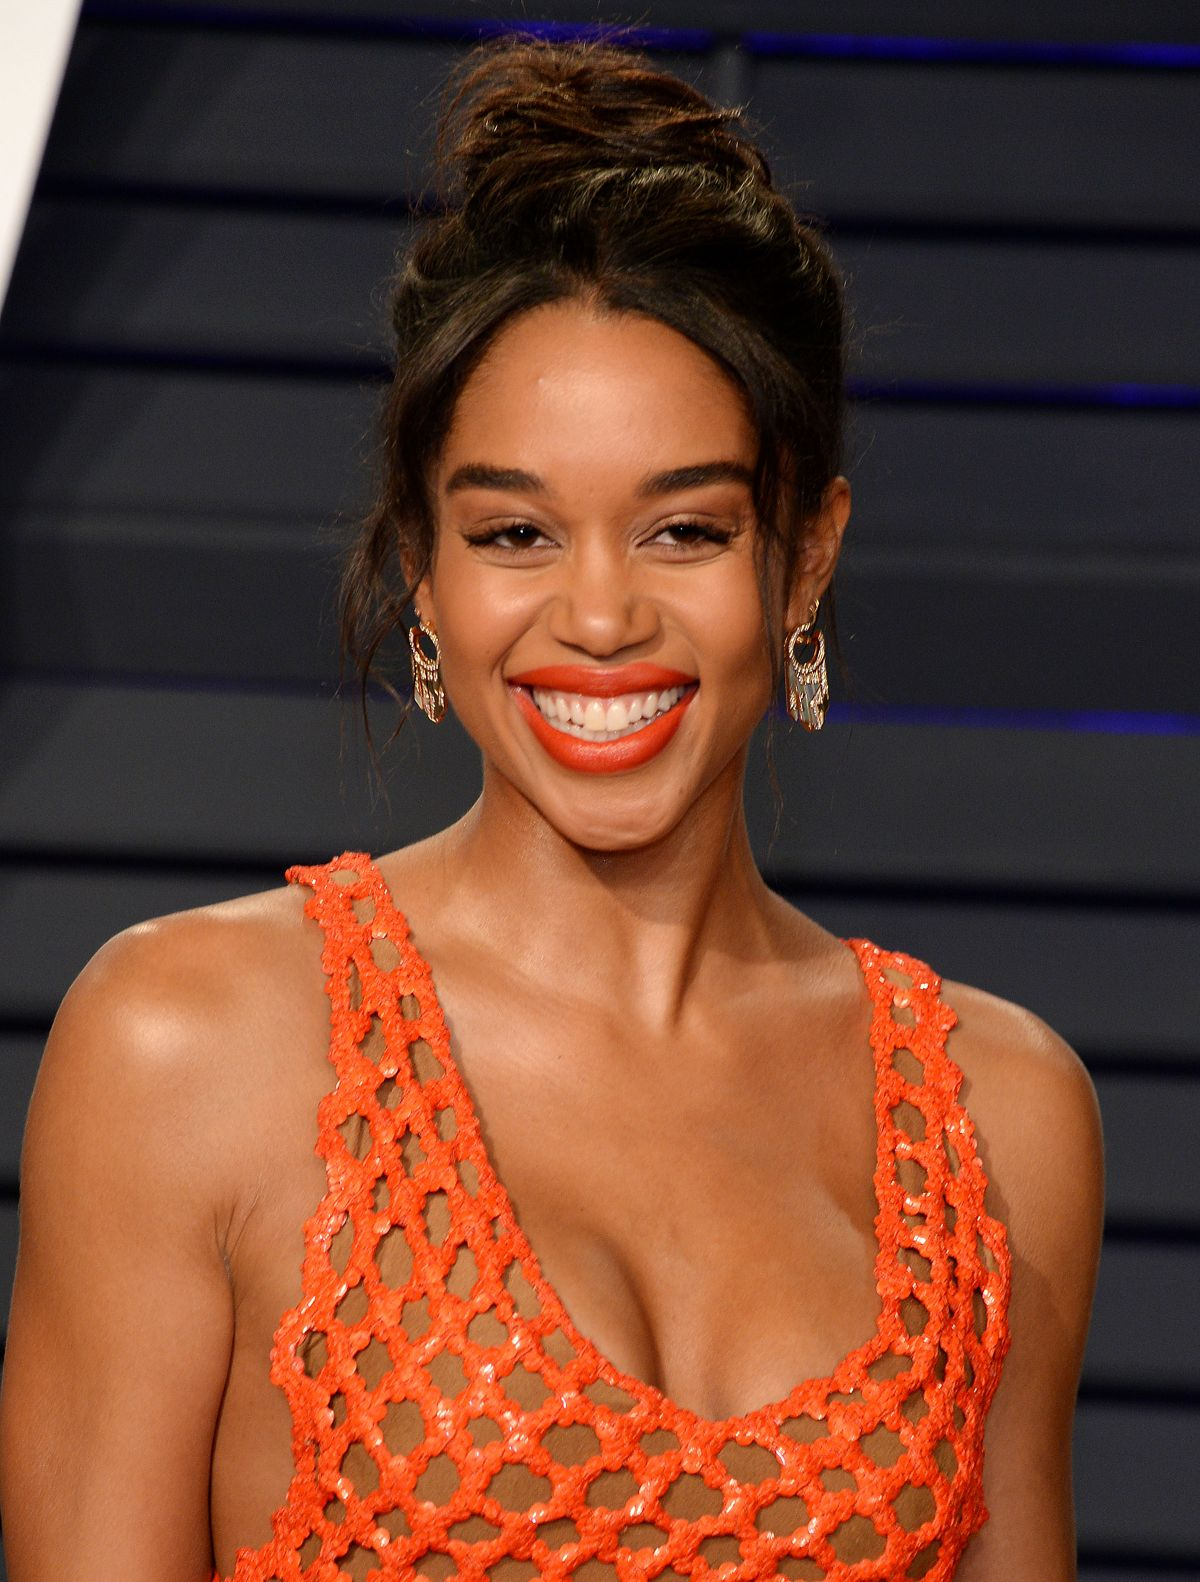 LAURA HARRIER at Vanity Fair Oscar Party in Beverly Hills